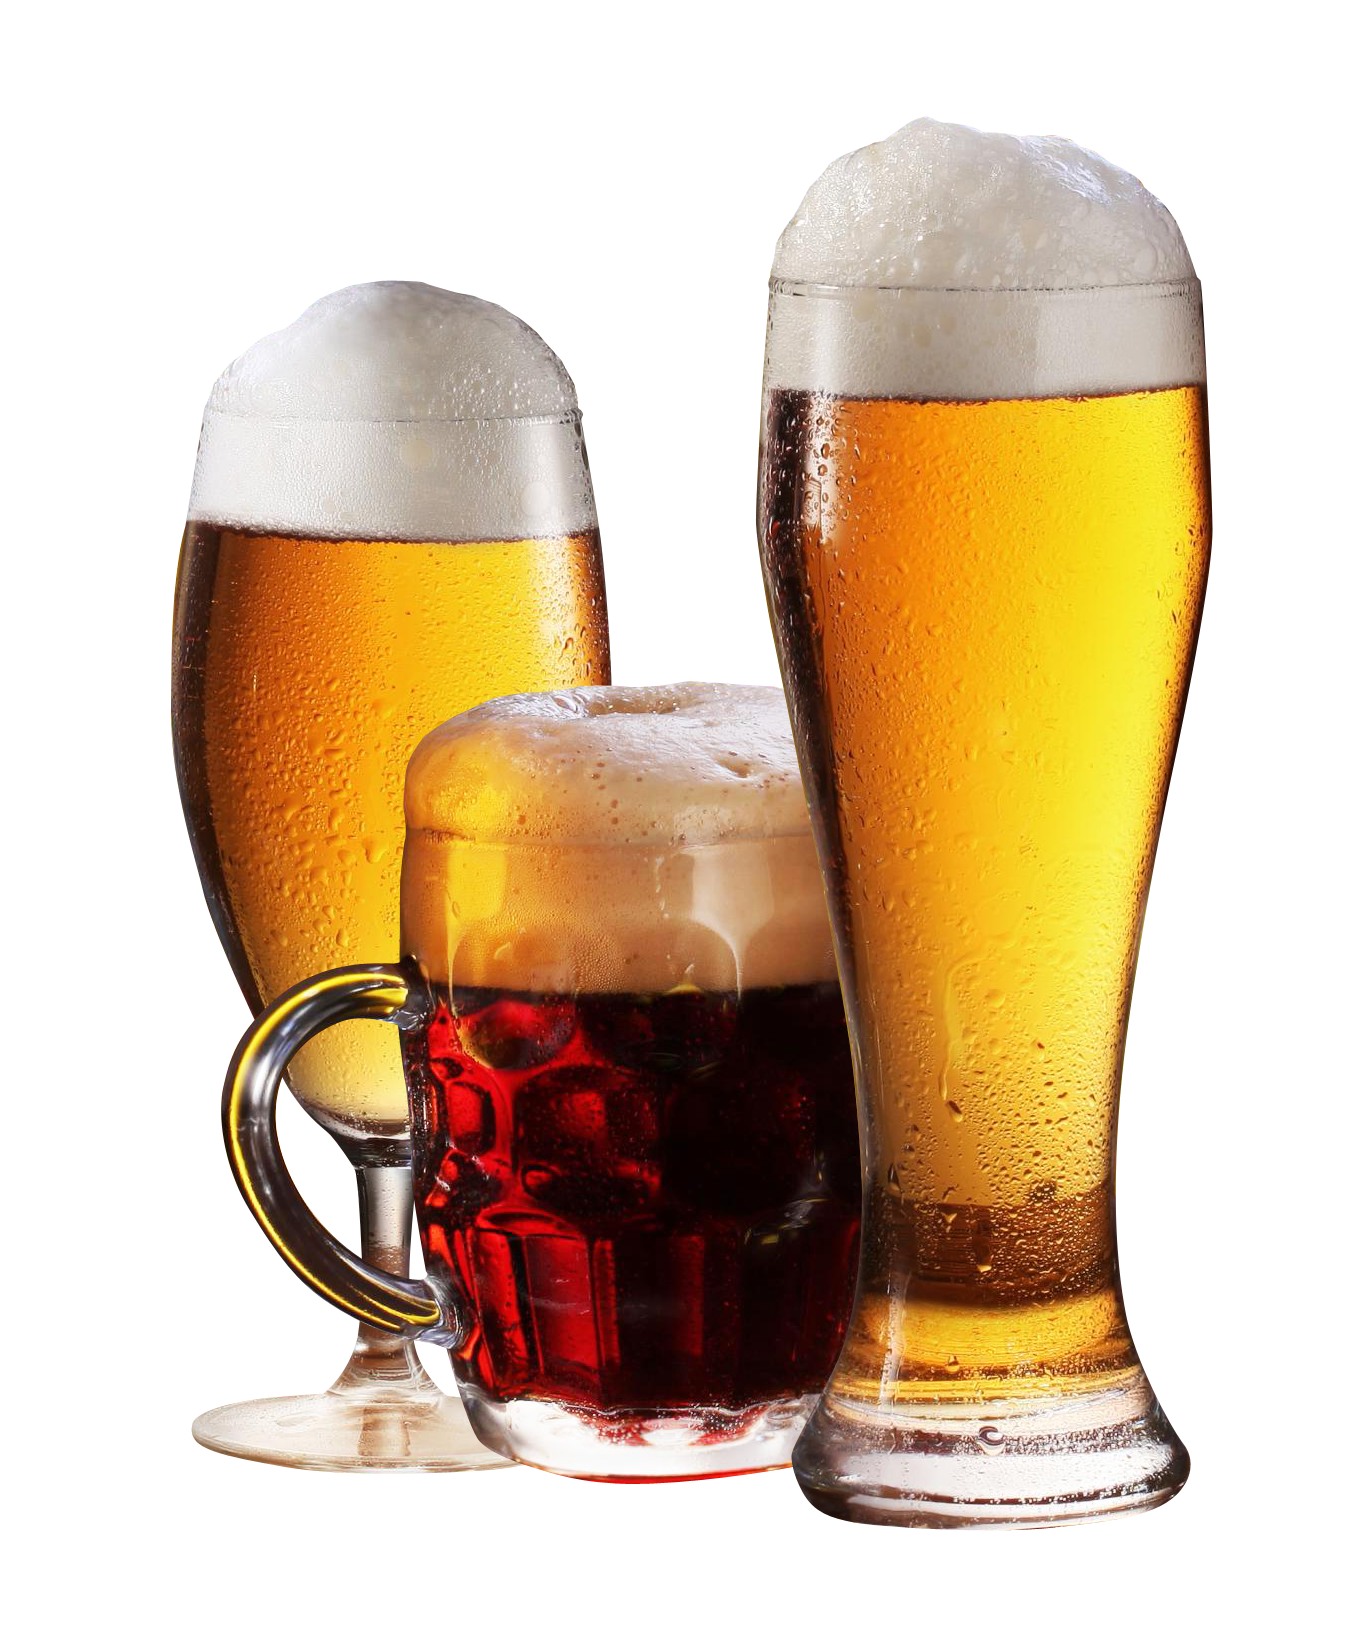 Beer Glass PNG Image - PurePNG